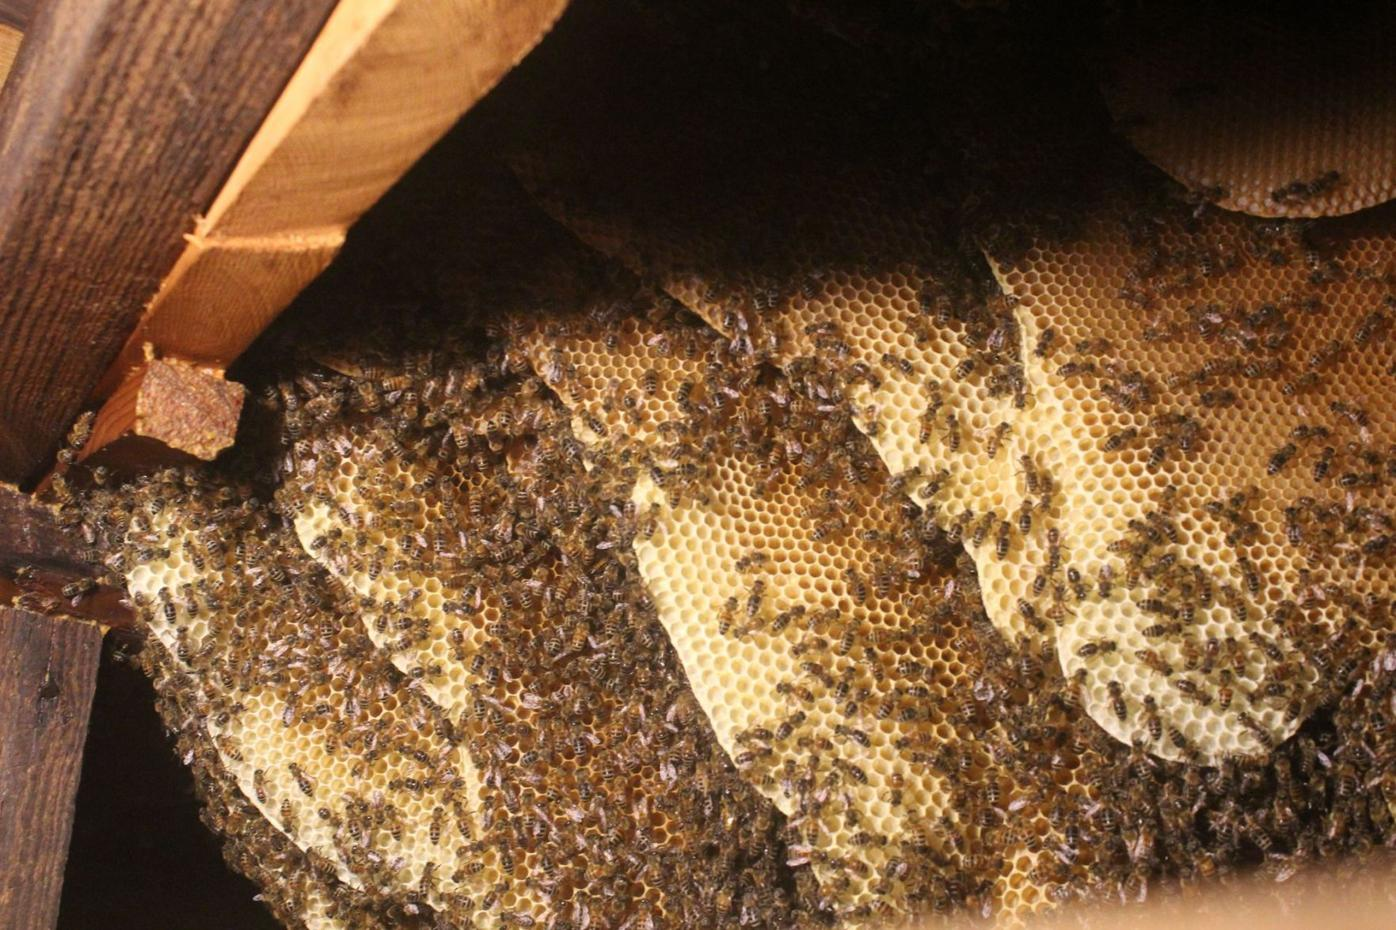 Close up of hive